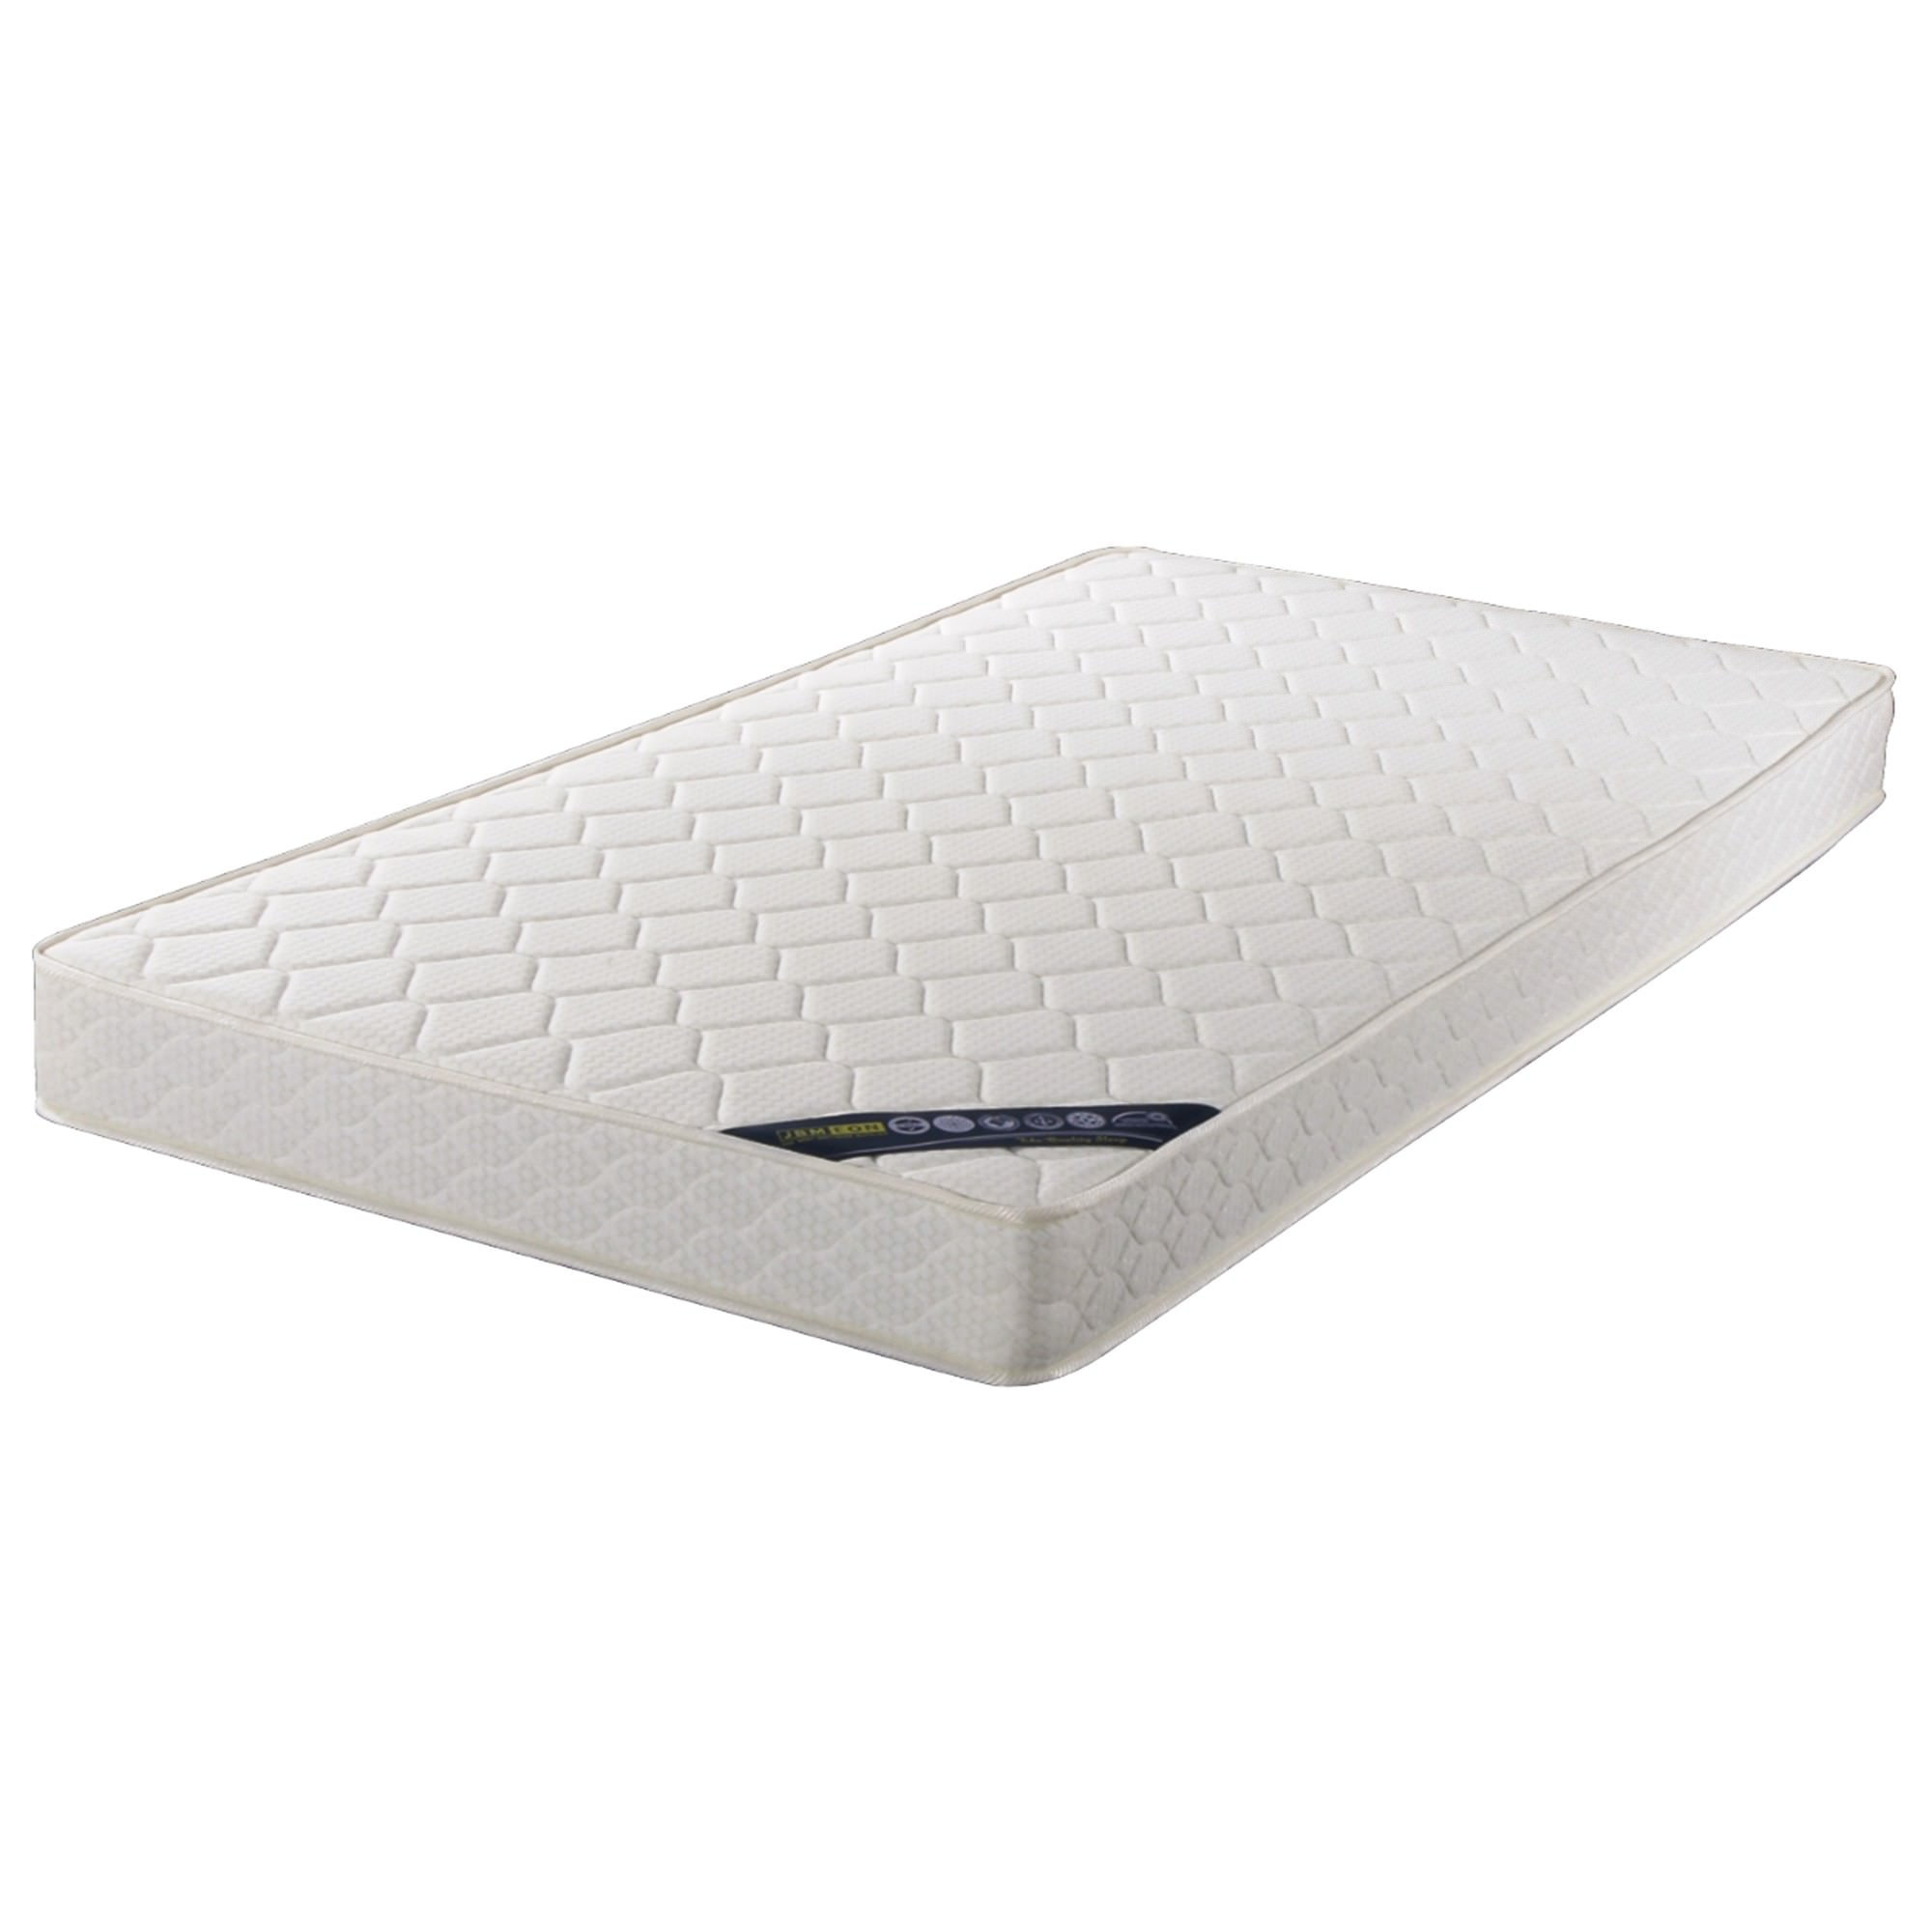 Venice Bonnell Spring Medium Roll Up Mattress, Single